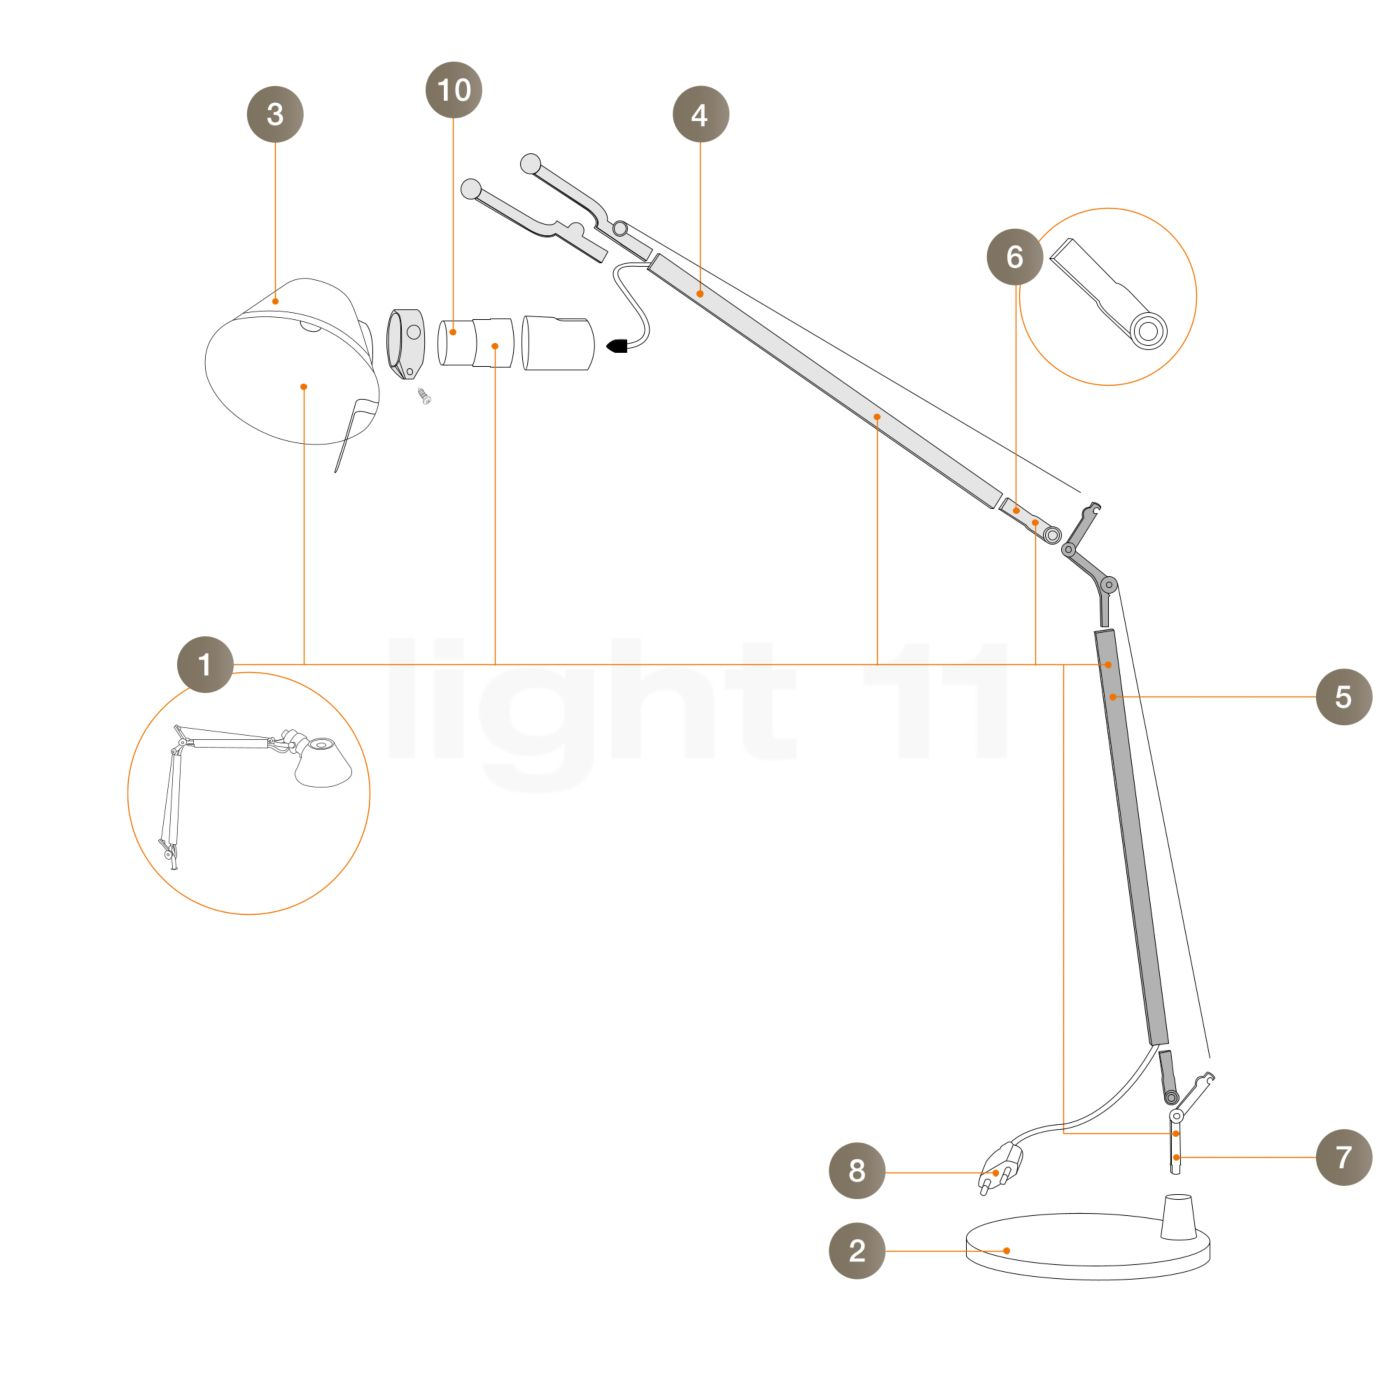 Buy Artemide Spare parts for Tolomeo Micro, alu at